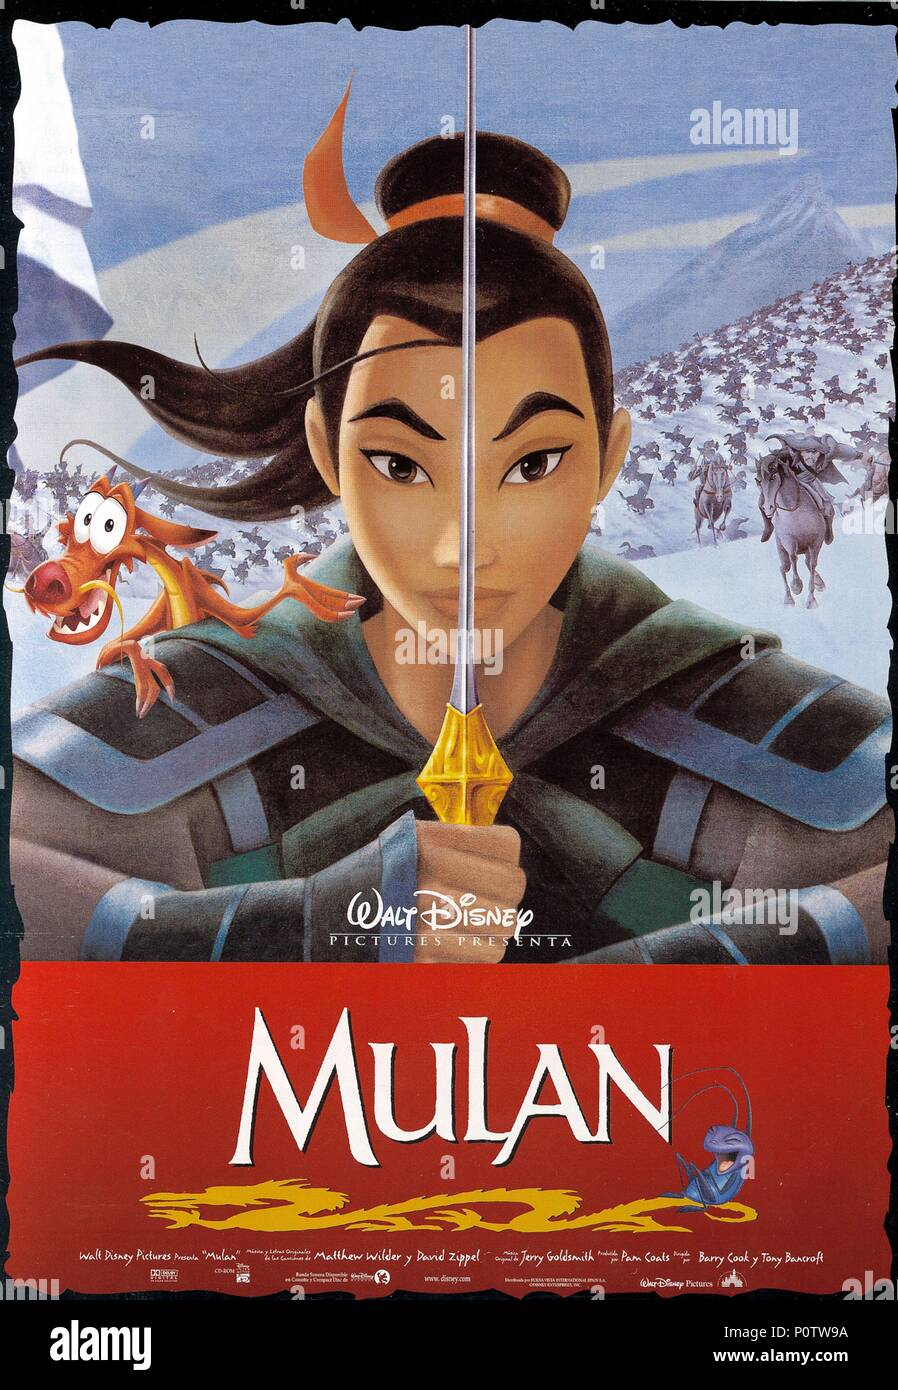 Mulan High Resolution Stock Photography And Images Alamy